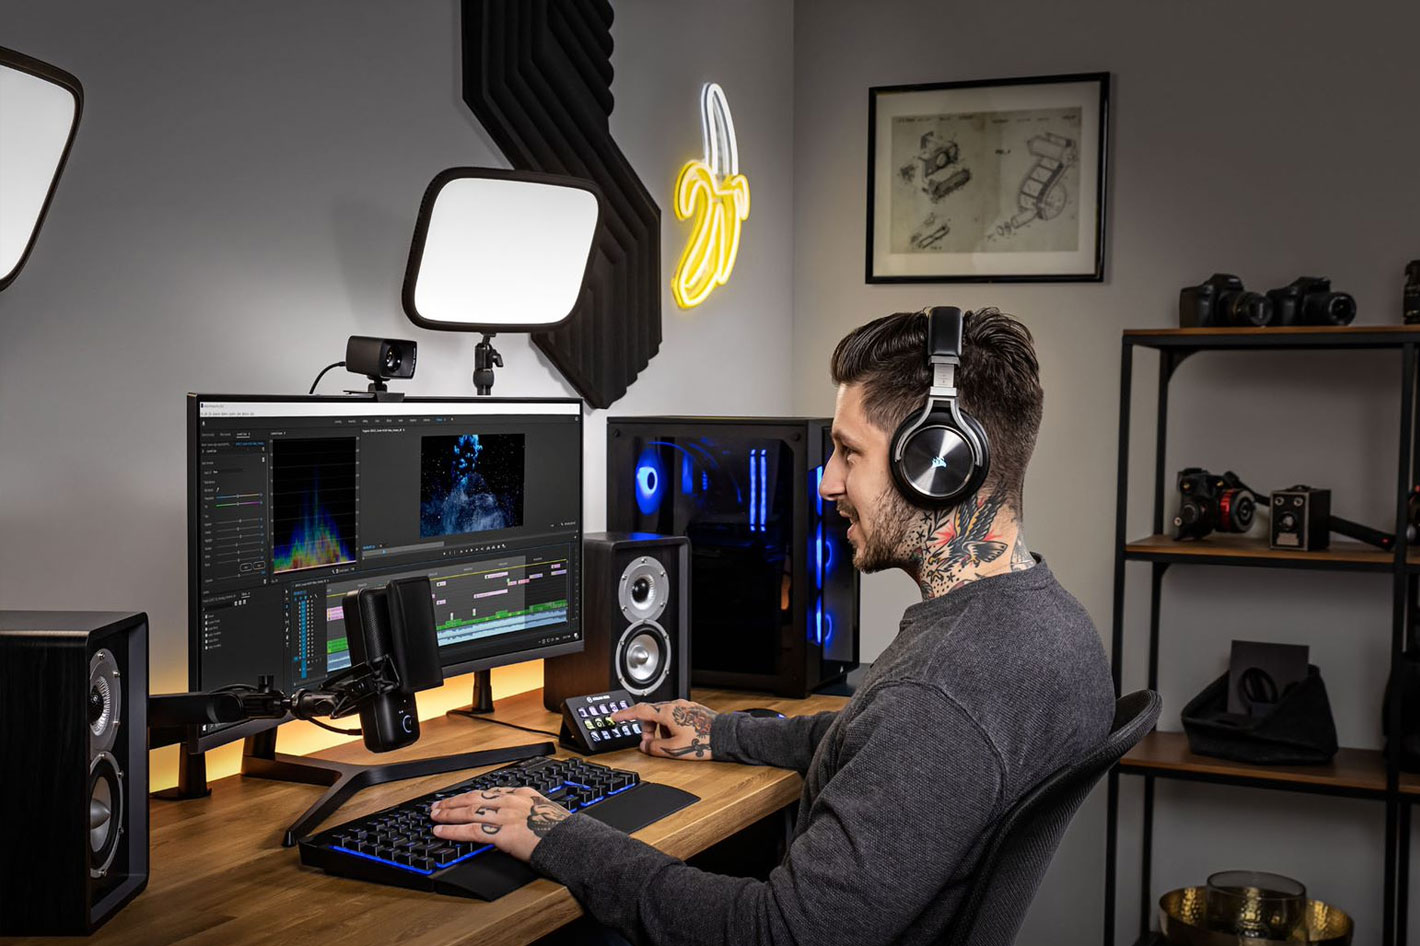 Elgato launches Facecam, and other new products for content creators